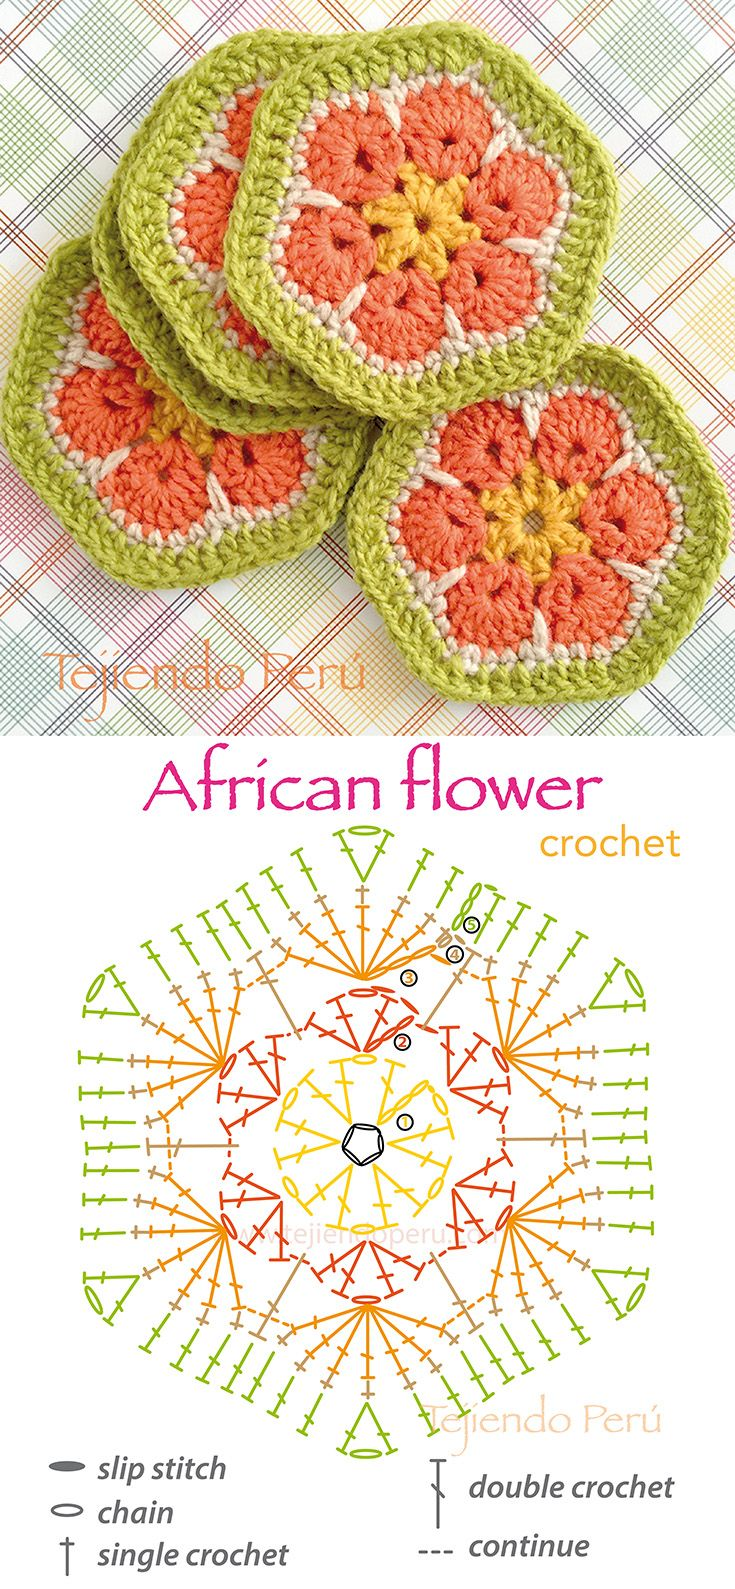 Crochet African Flower Pattern Chart Or Diagram Puntos Fantasa Doily Patrones 2 Patterns Pin